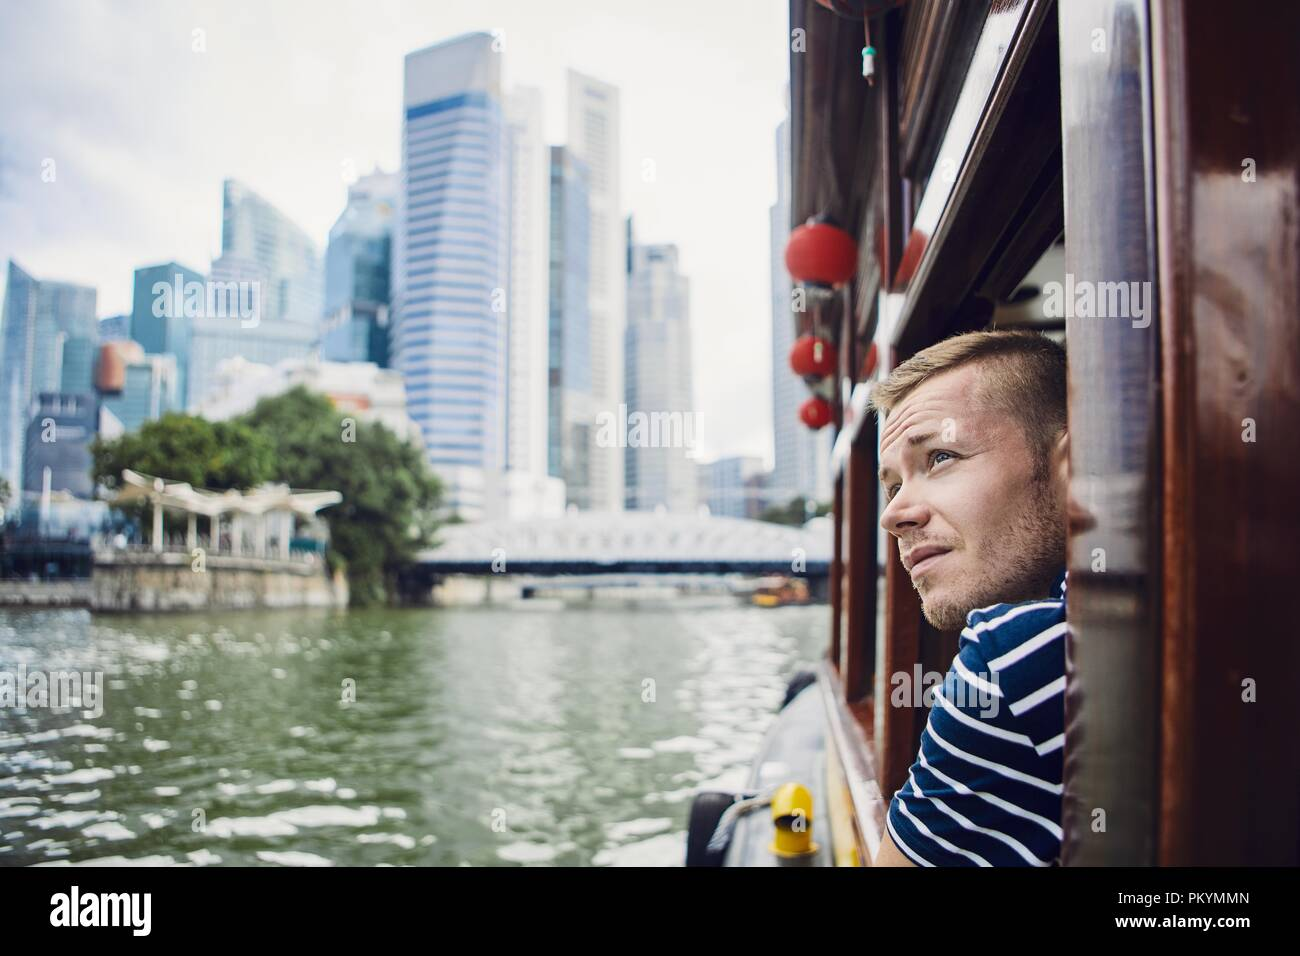 Young man exploring city and looking out from river boat in Singapore. - Stock Image